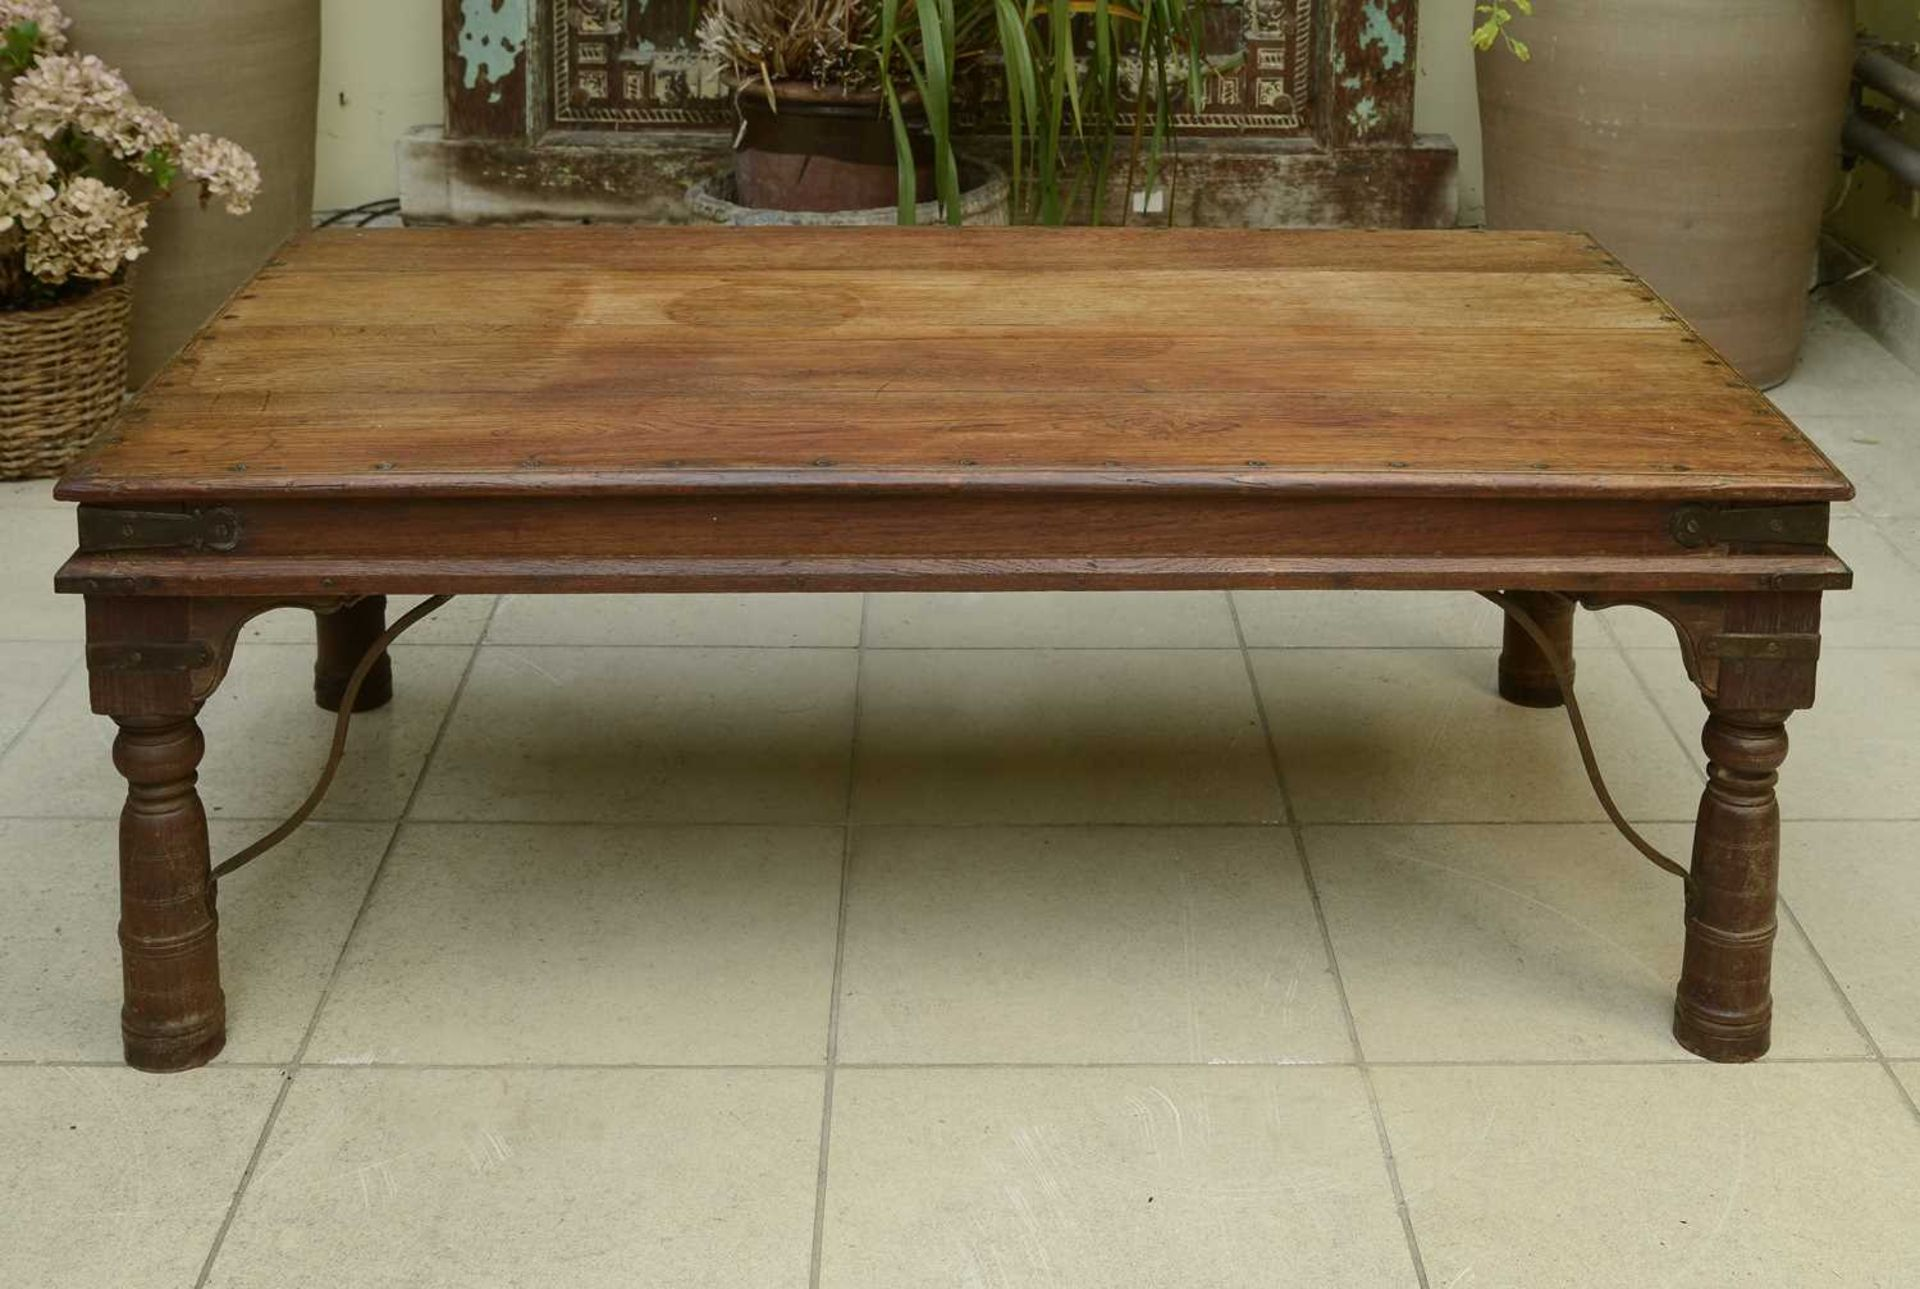 An Indian hardwood low table, - Image 2 of 3